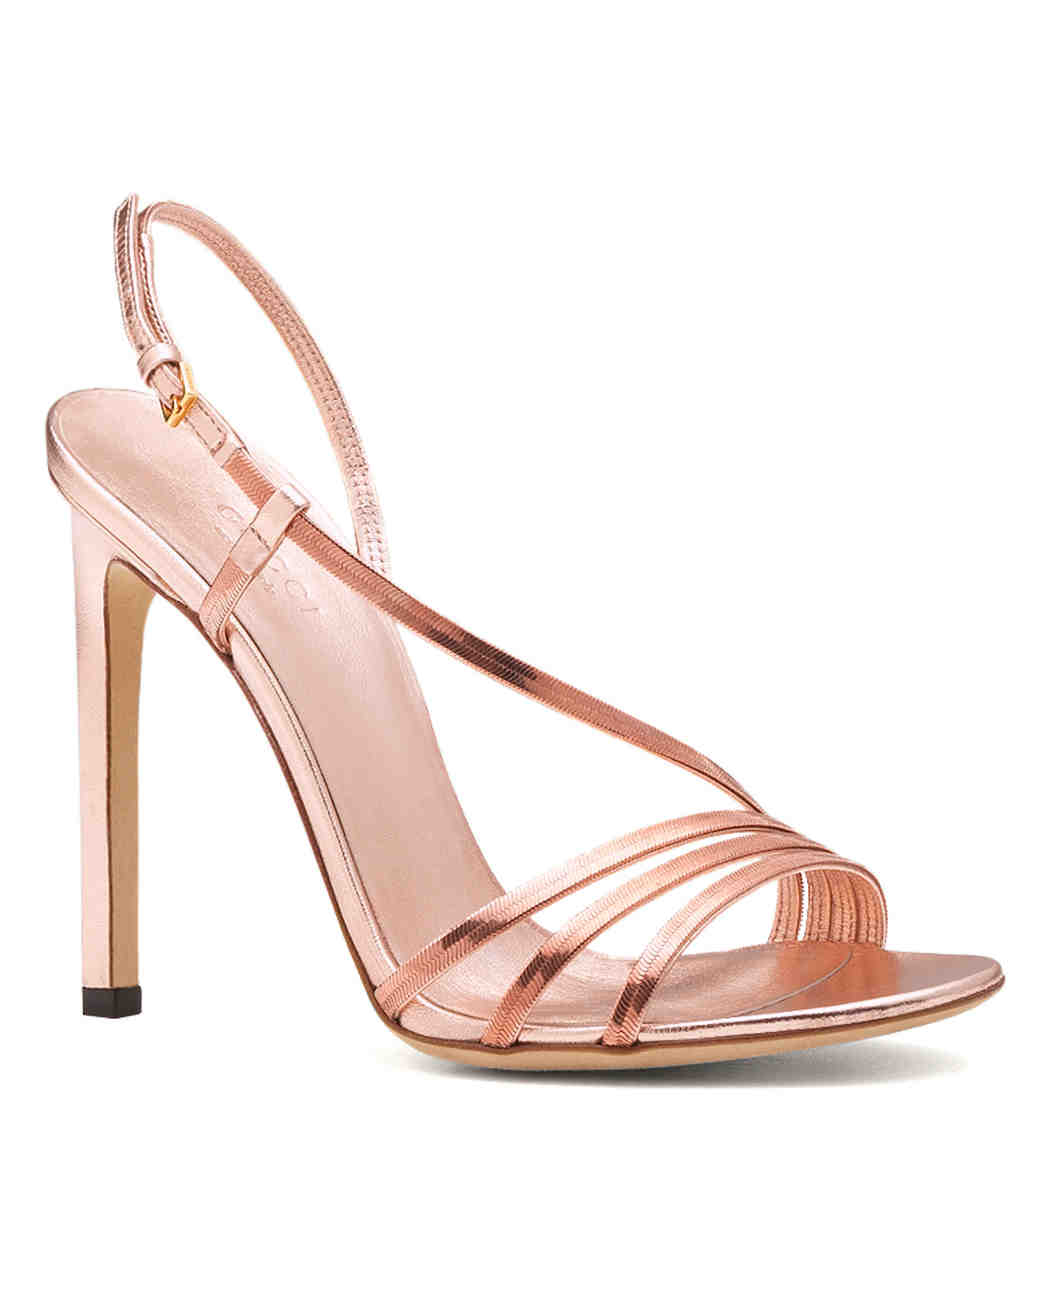 gucci-shoes-msw-fall13.jpg